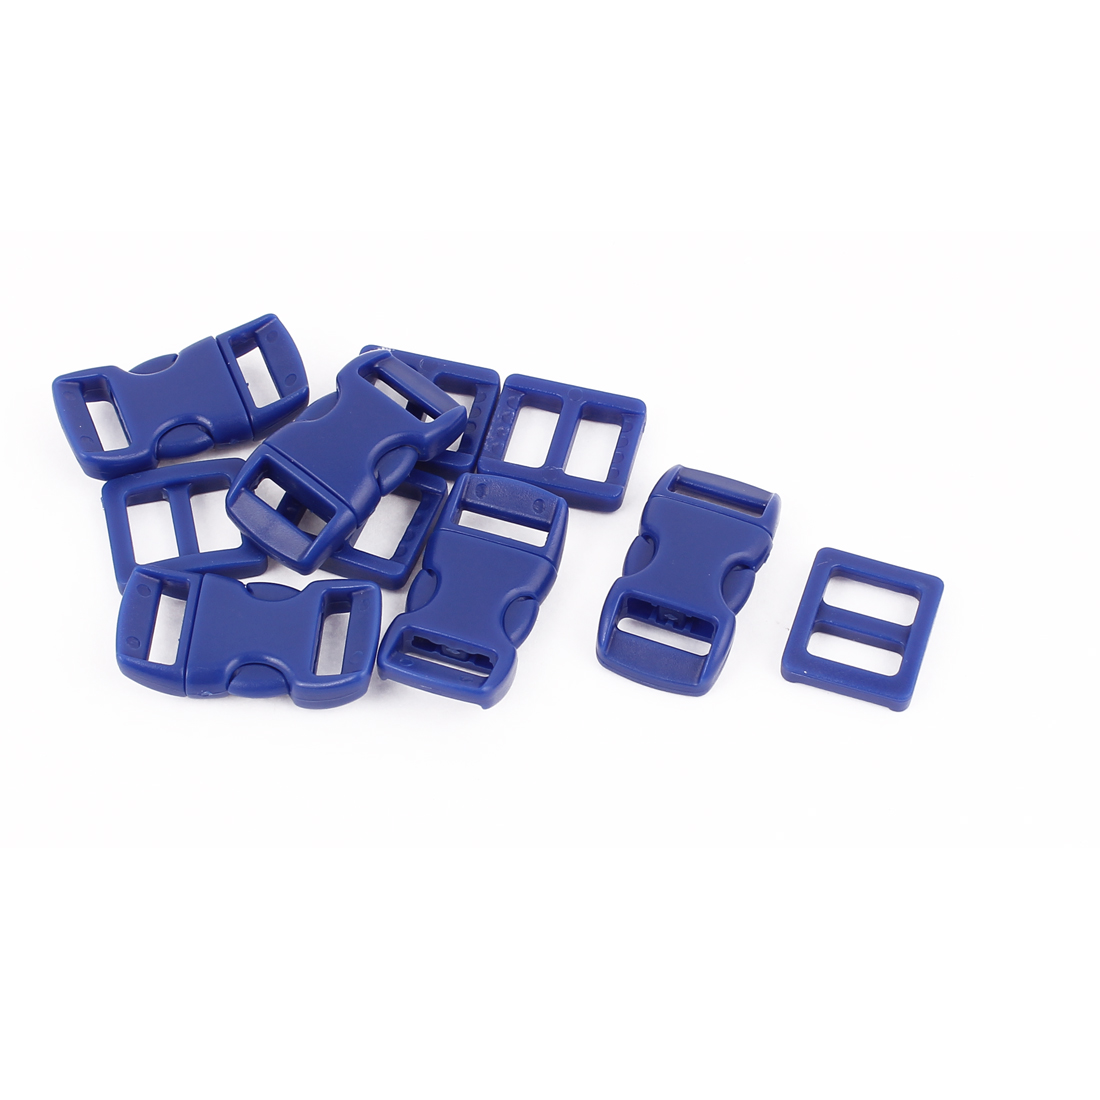 5pcs Dark Blue Plastic Packbag Side Quick Release Clasp Buckles for 10-11mm Webbing Strap